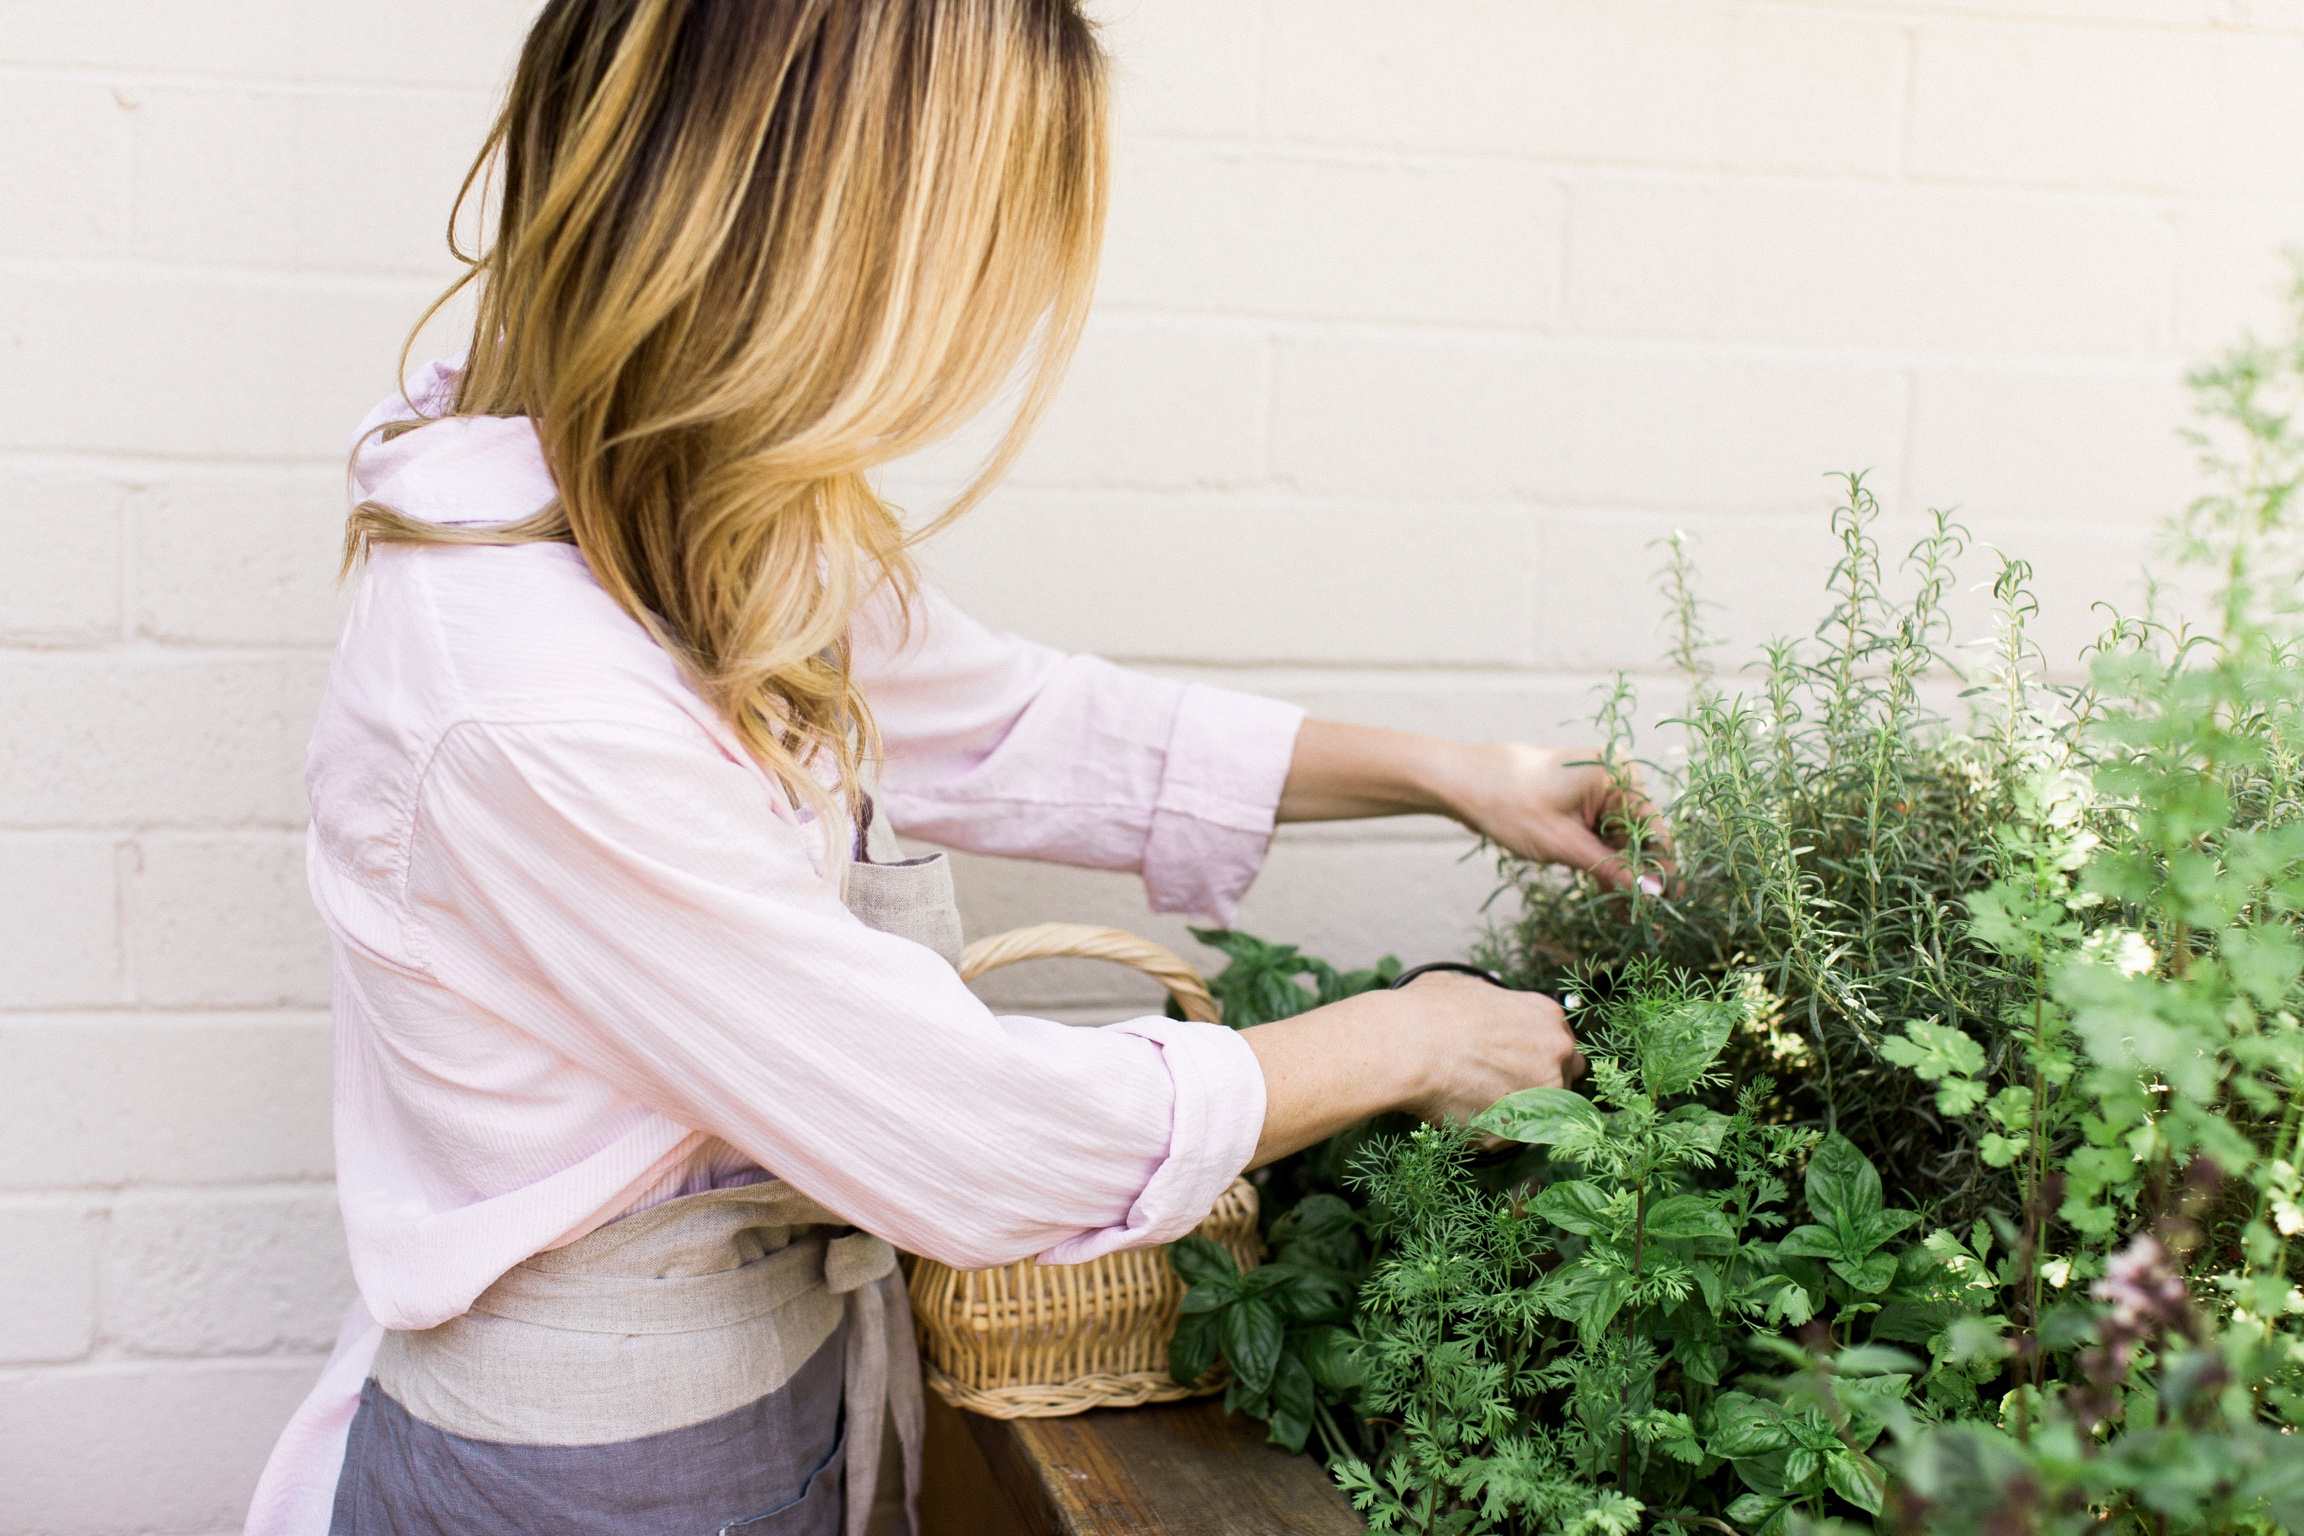 Clipping herbs for plate garnish